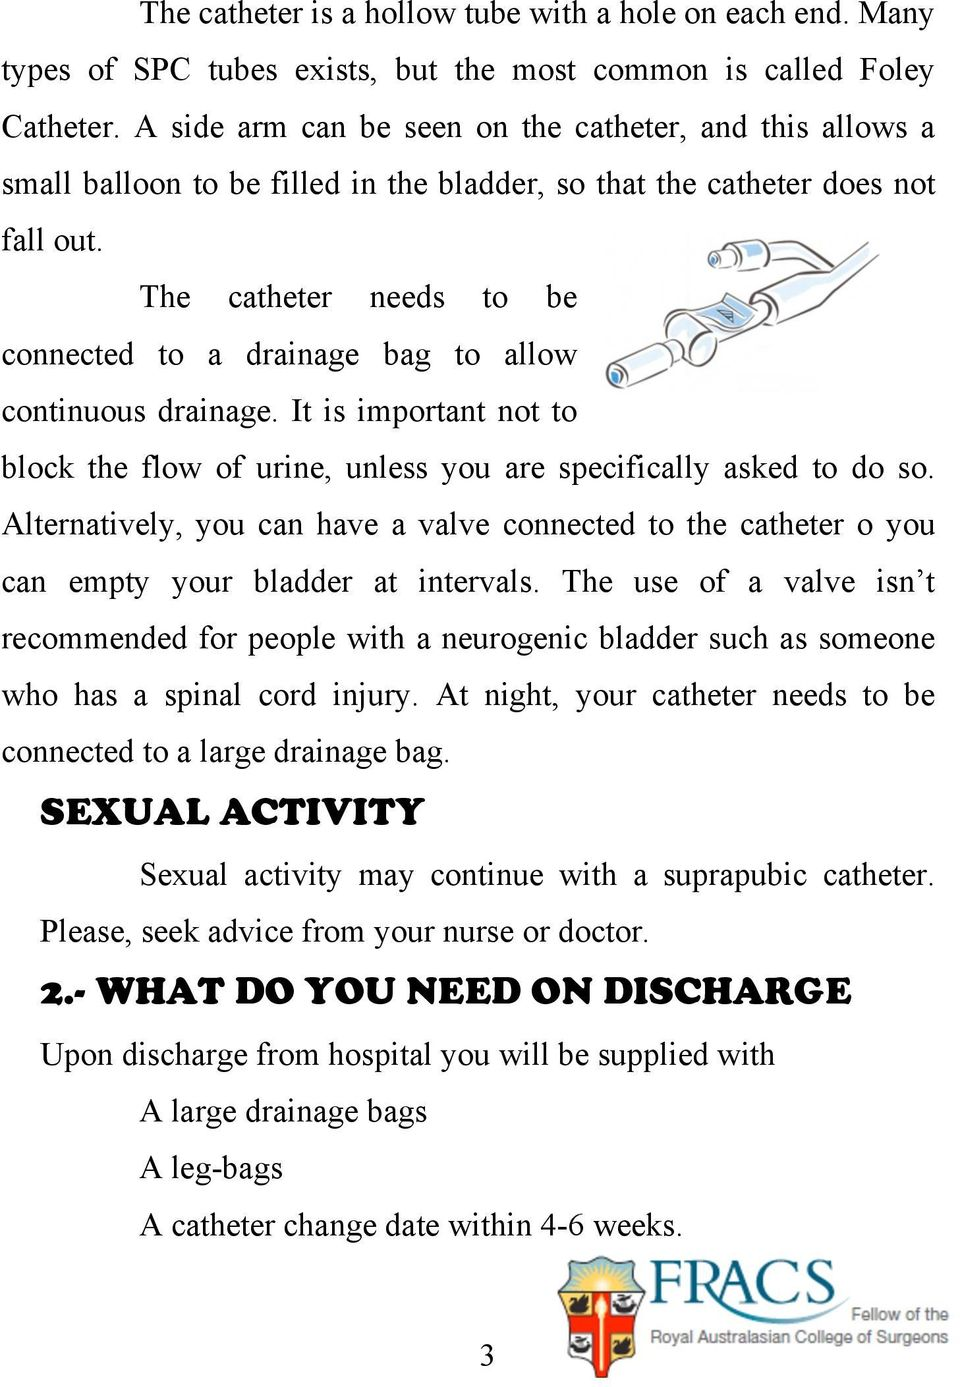 The catheter needs to be connected to a drainage bag to allow continuous drainage. It is important not to block the flow of urine, unless you are specifically asked to do so.